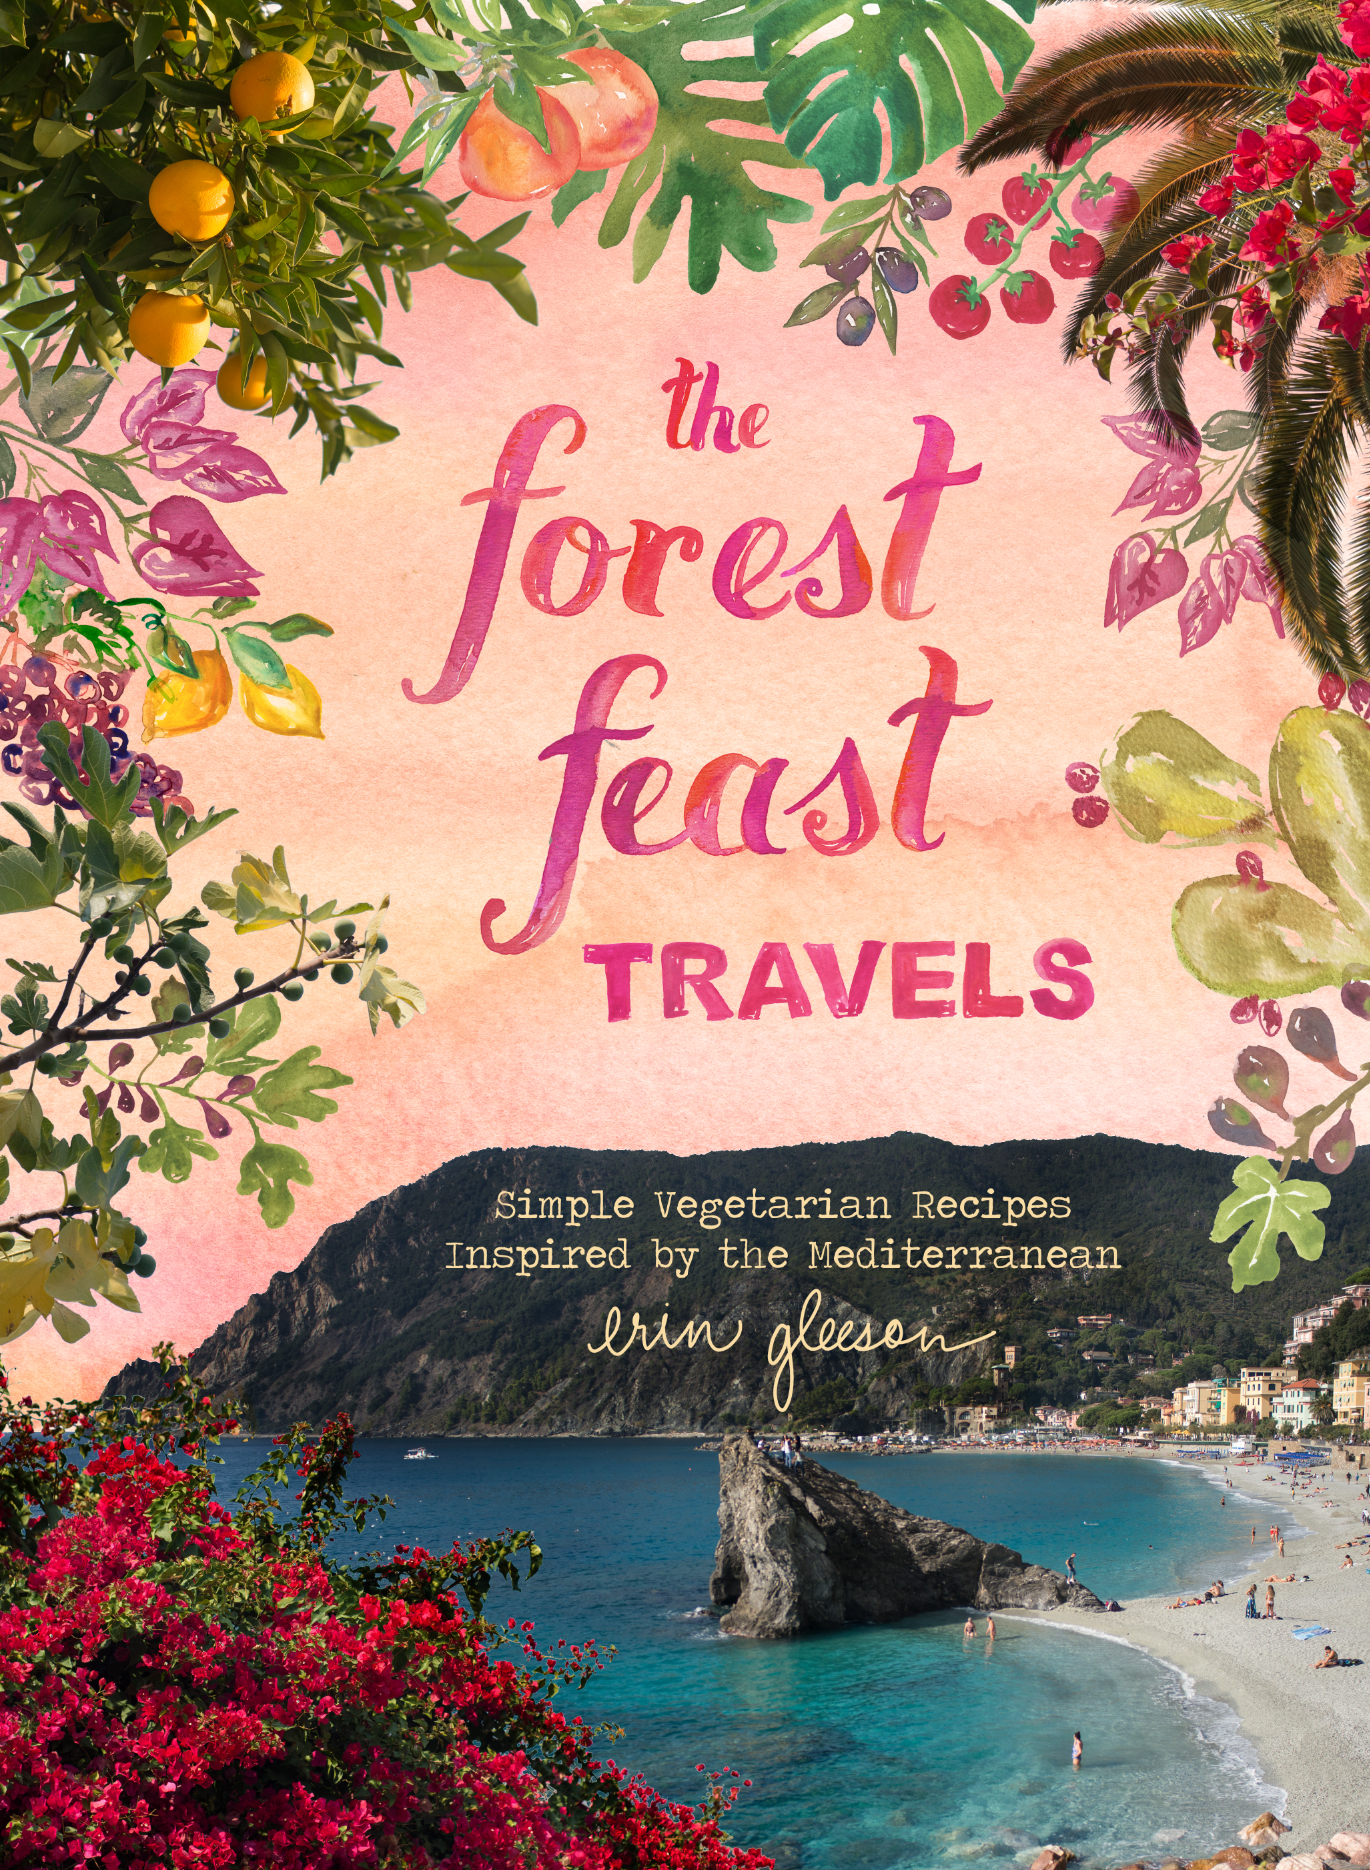 The Forest Feast Travels - Gleeson transports readers to Europe, with recipes inspired by her exploration of the cultures and cuisines of France, Portugal, Spain, and Italy during an extended family trip. Reimagining the flavors and signature dishes of this part of the Mediterranean, Gleeson presents 100 vegetarian recipes for creating effortless, unforgettable meals.Abrams Books, Sept. 17, 2019.Read more here »